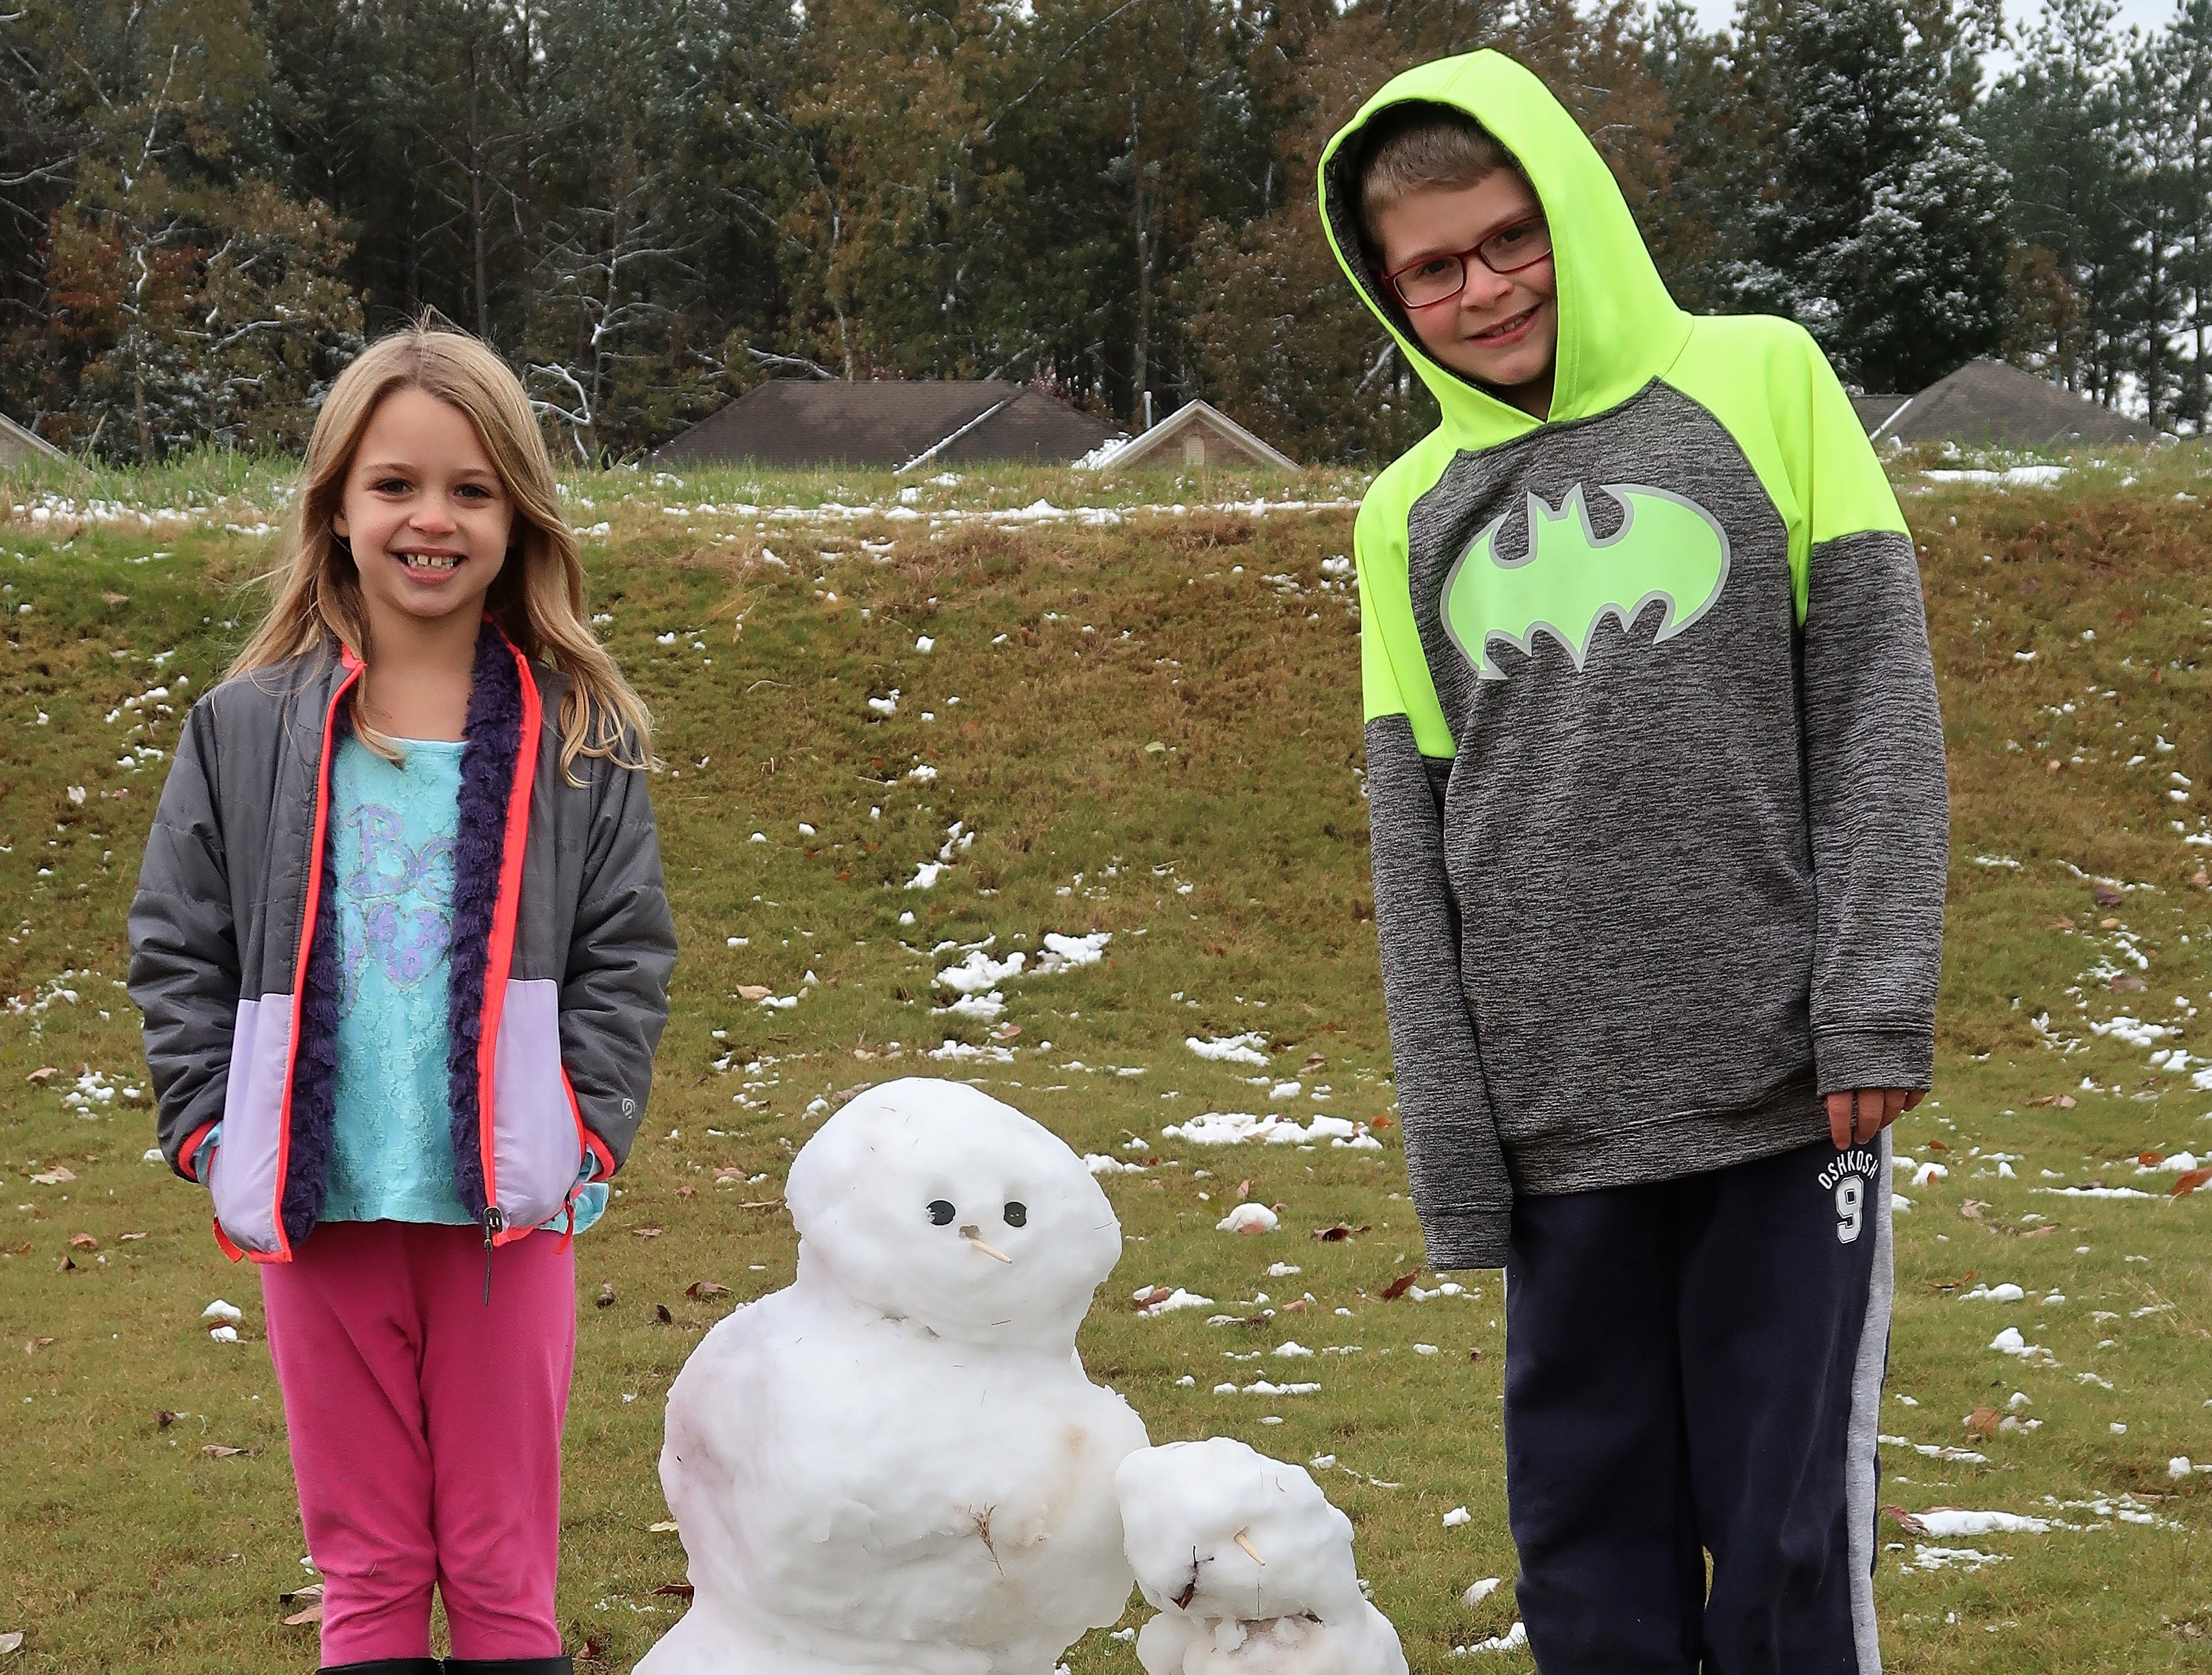 Luci Lutrell and Parker Lutrell played in the snow and built a snowman while having a day off from school on Thursday, November 15, 2018.